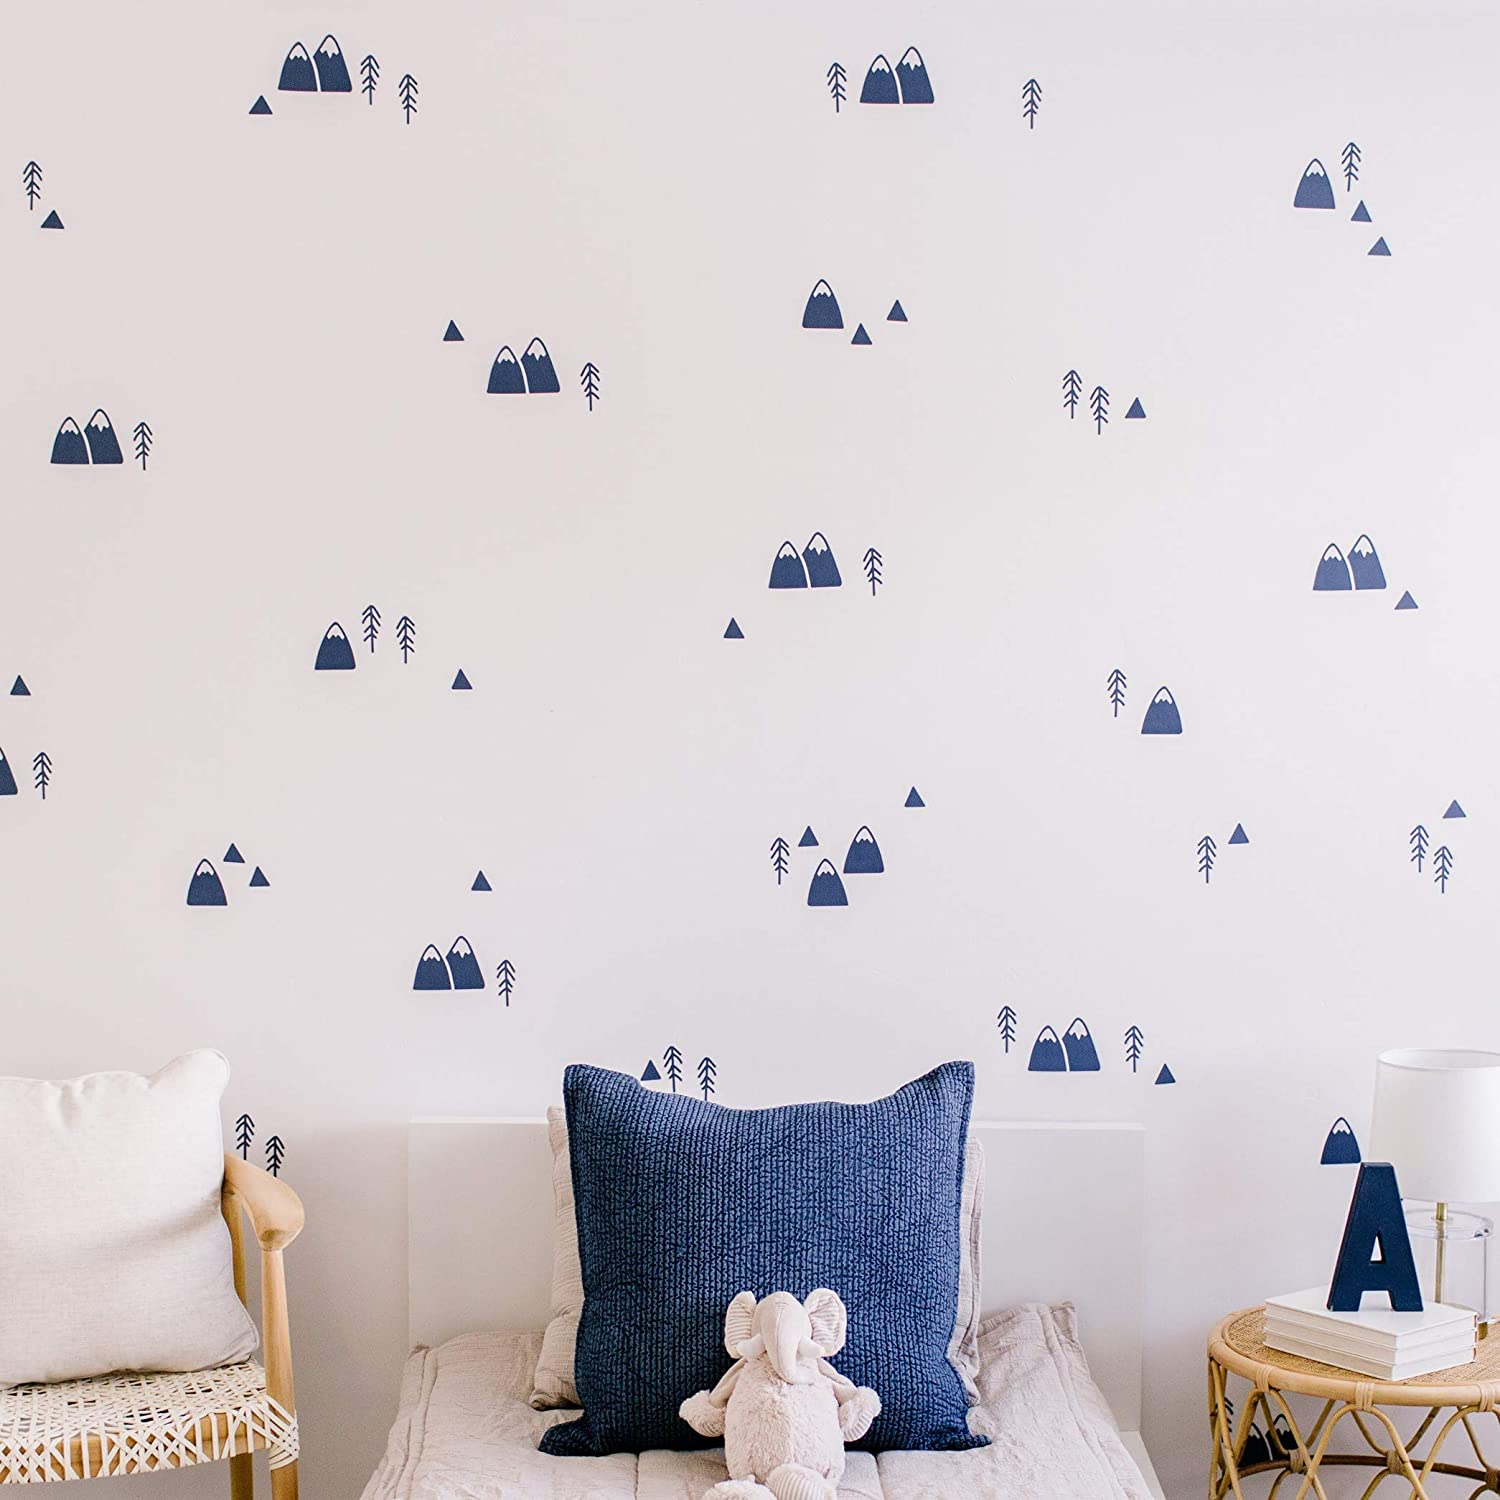 Modern Maxwell Wall Art Decals Bedroom Nursery 2021new shipping New mail order free for Living Boys